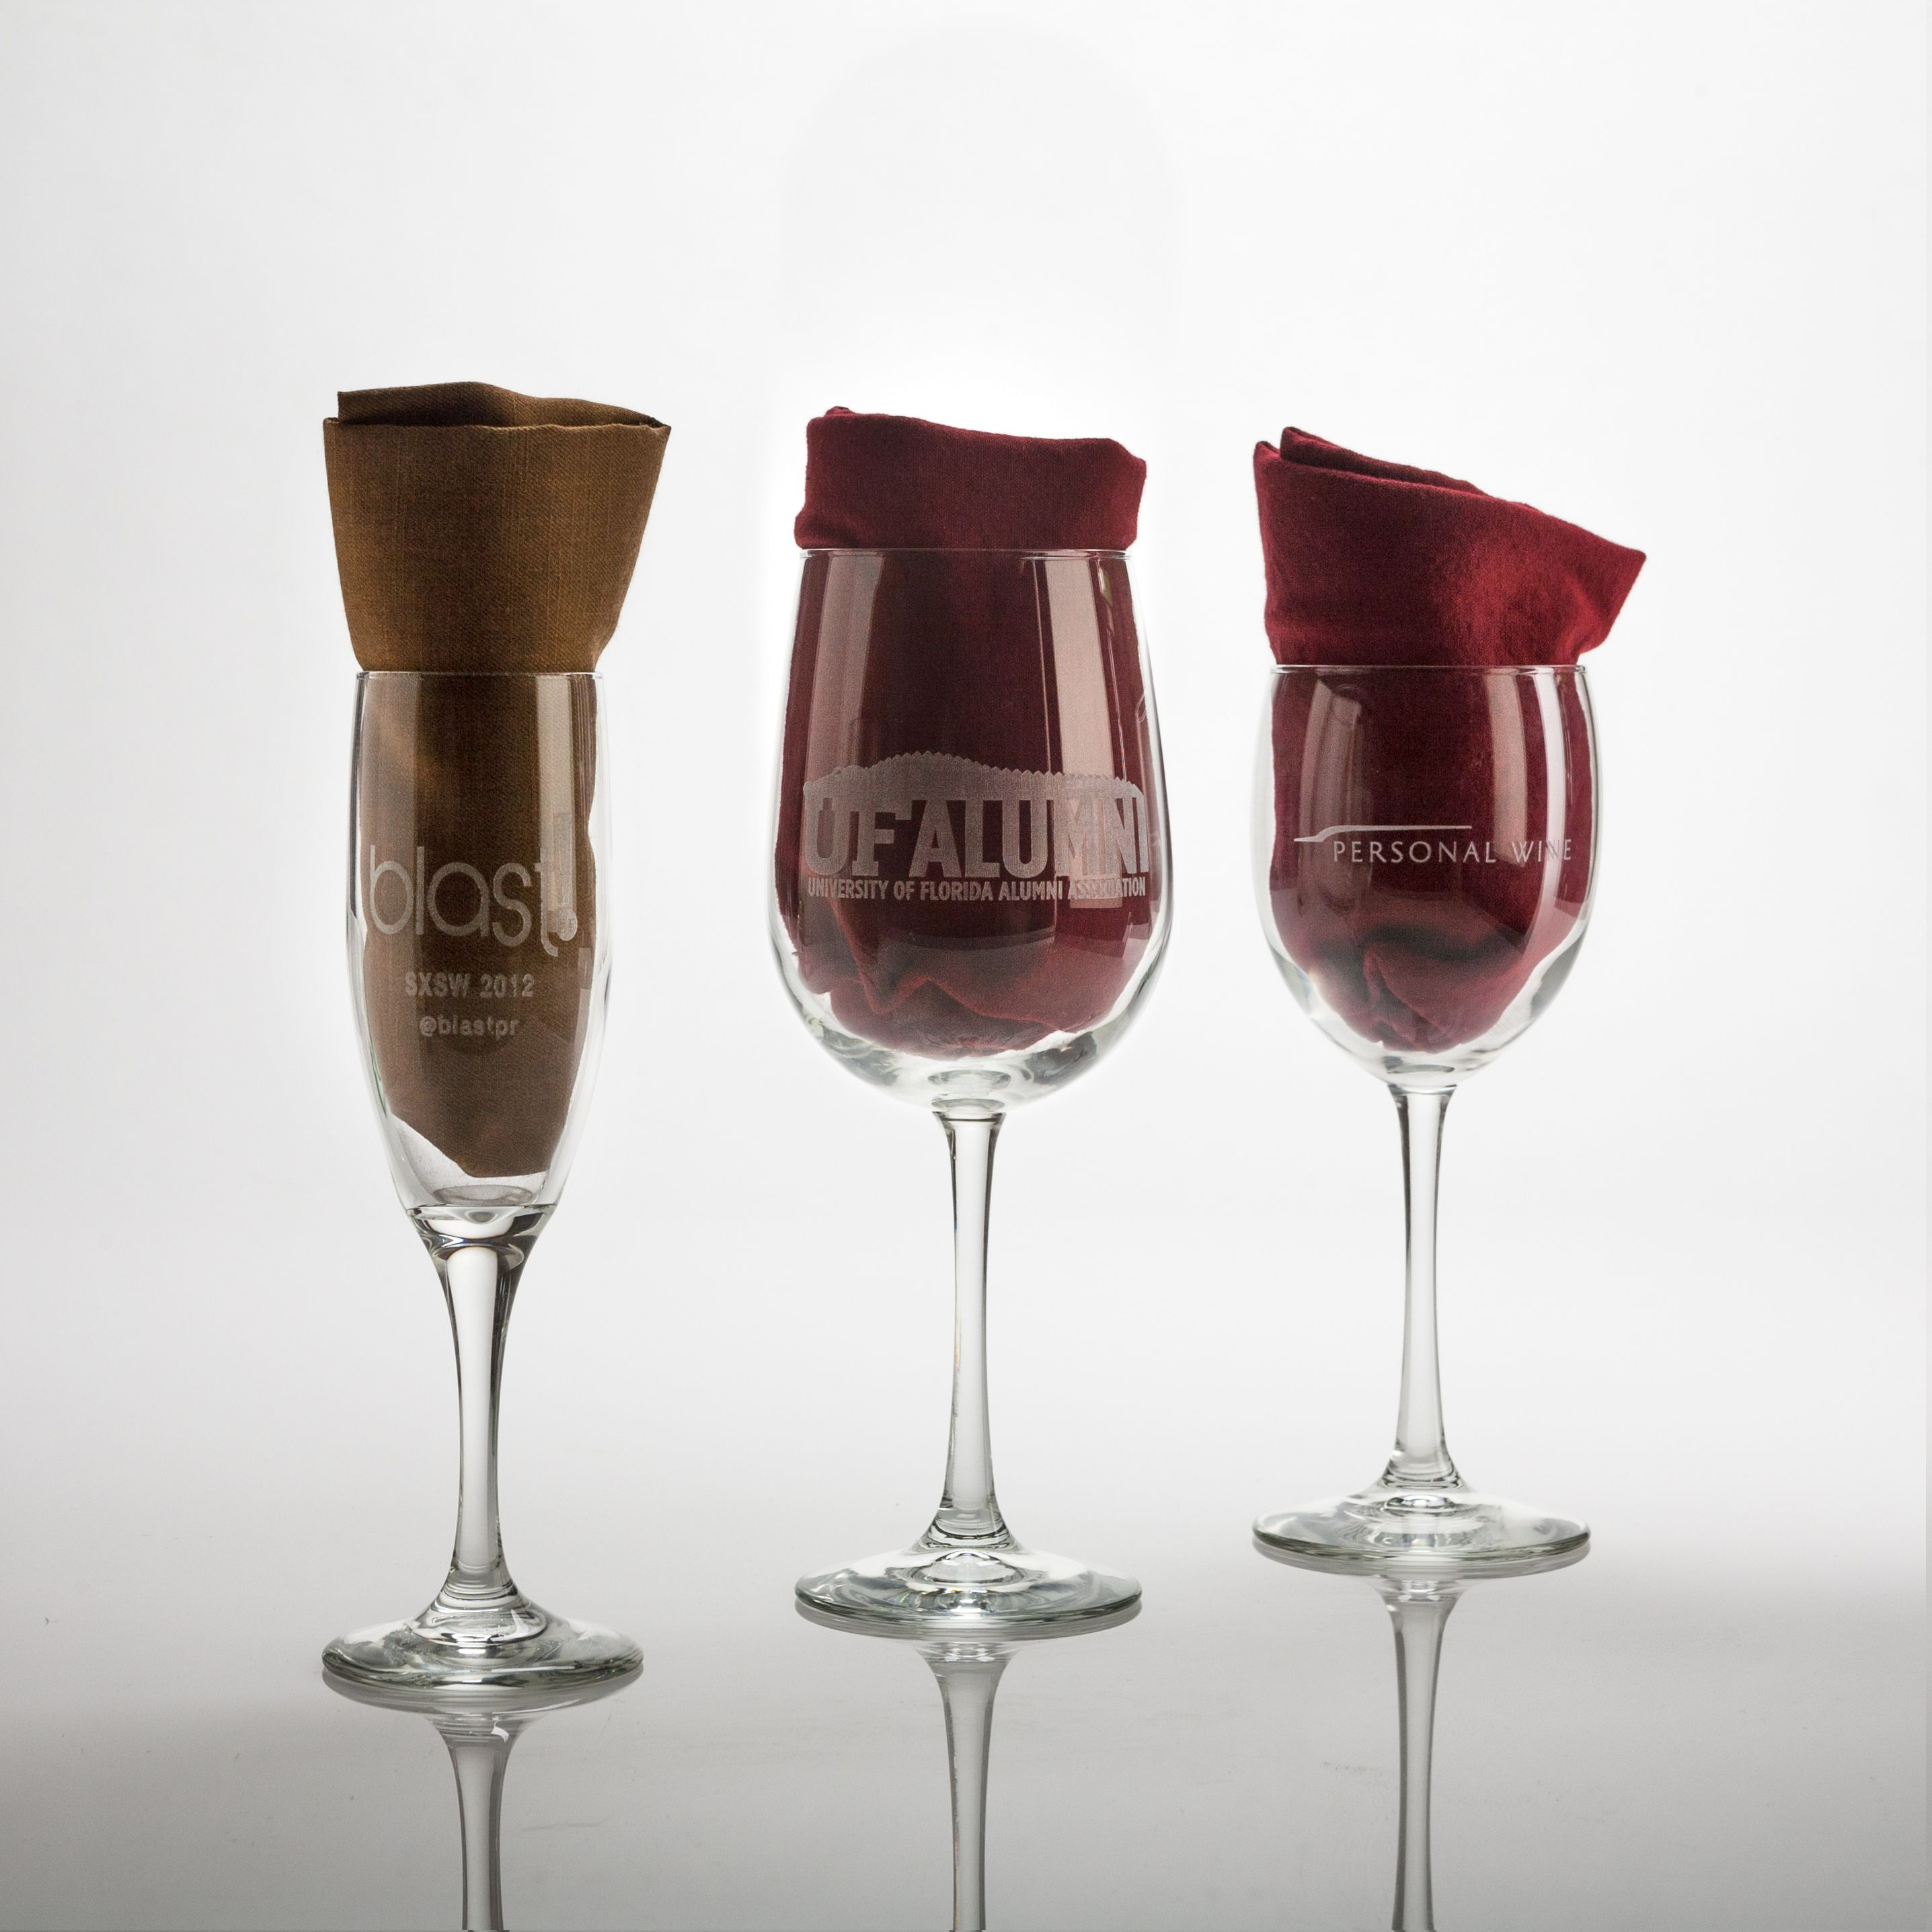 Custom engrave wine accessories The perfect gift for the